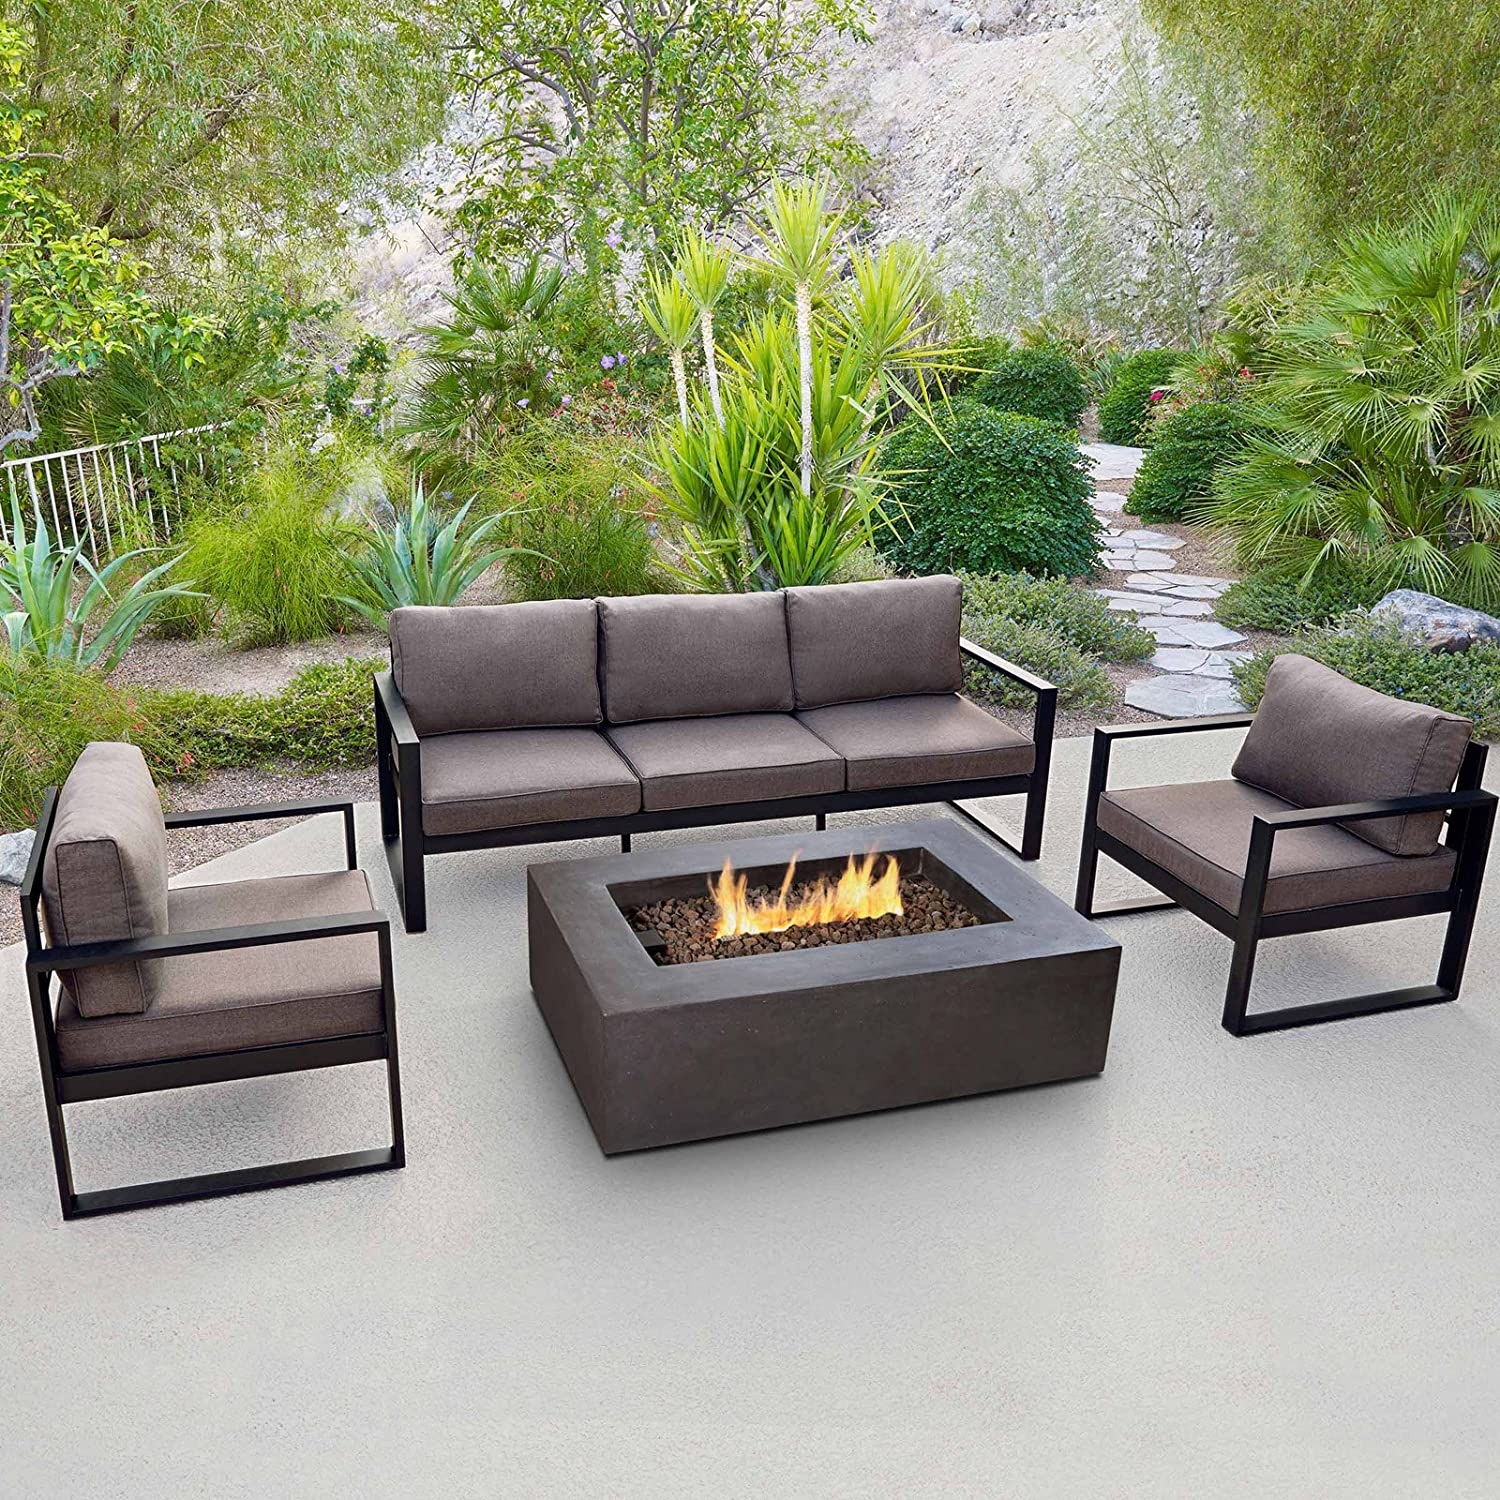 - Amazon.com : Real Flame 9621 Baltic 3 Seat Sofa : Garden & Outdoor